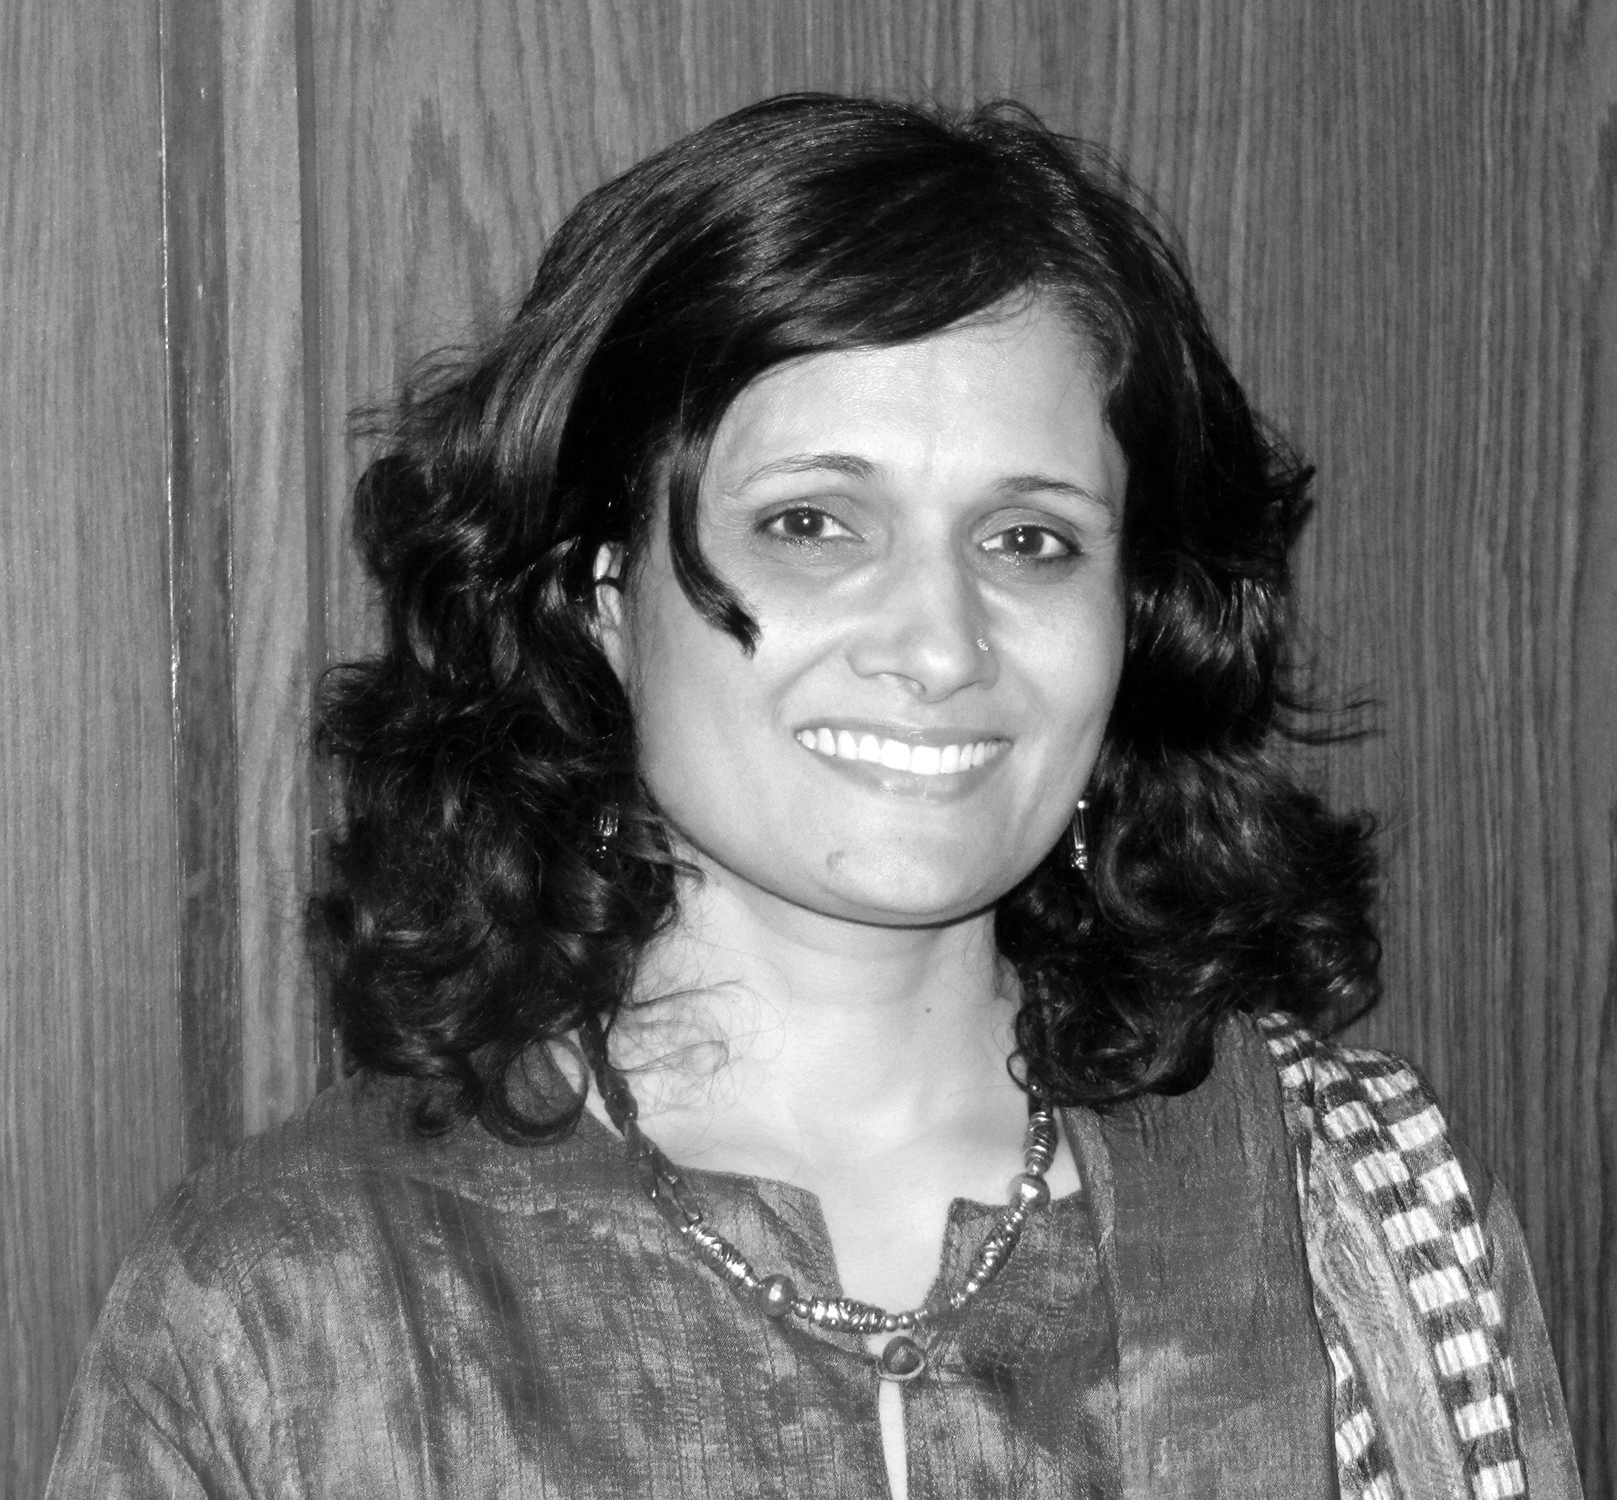 Dr. PALLAVI LATKAR, Founder, Grassroots Research and Consultancy